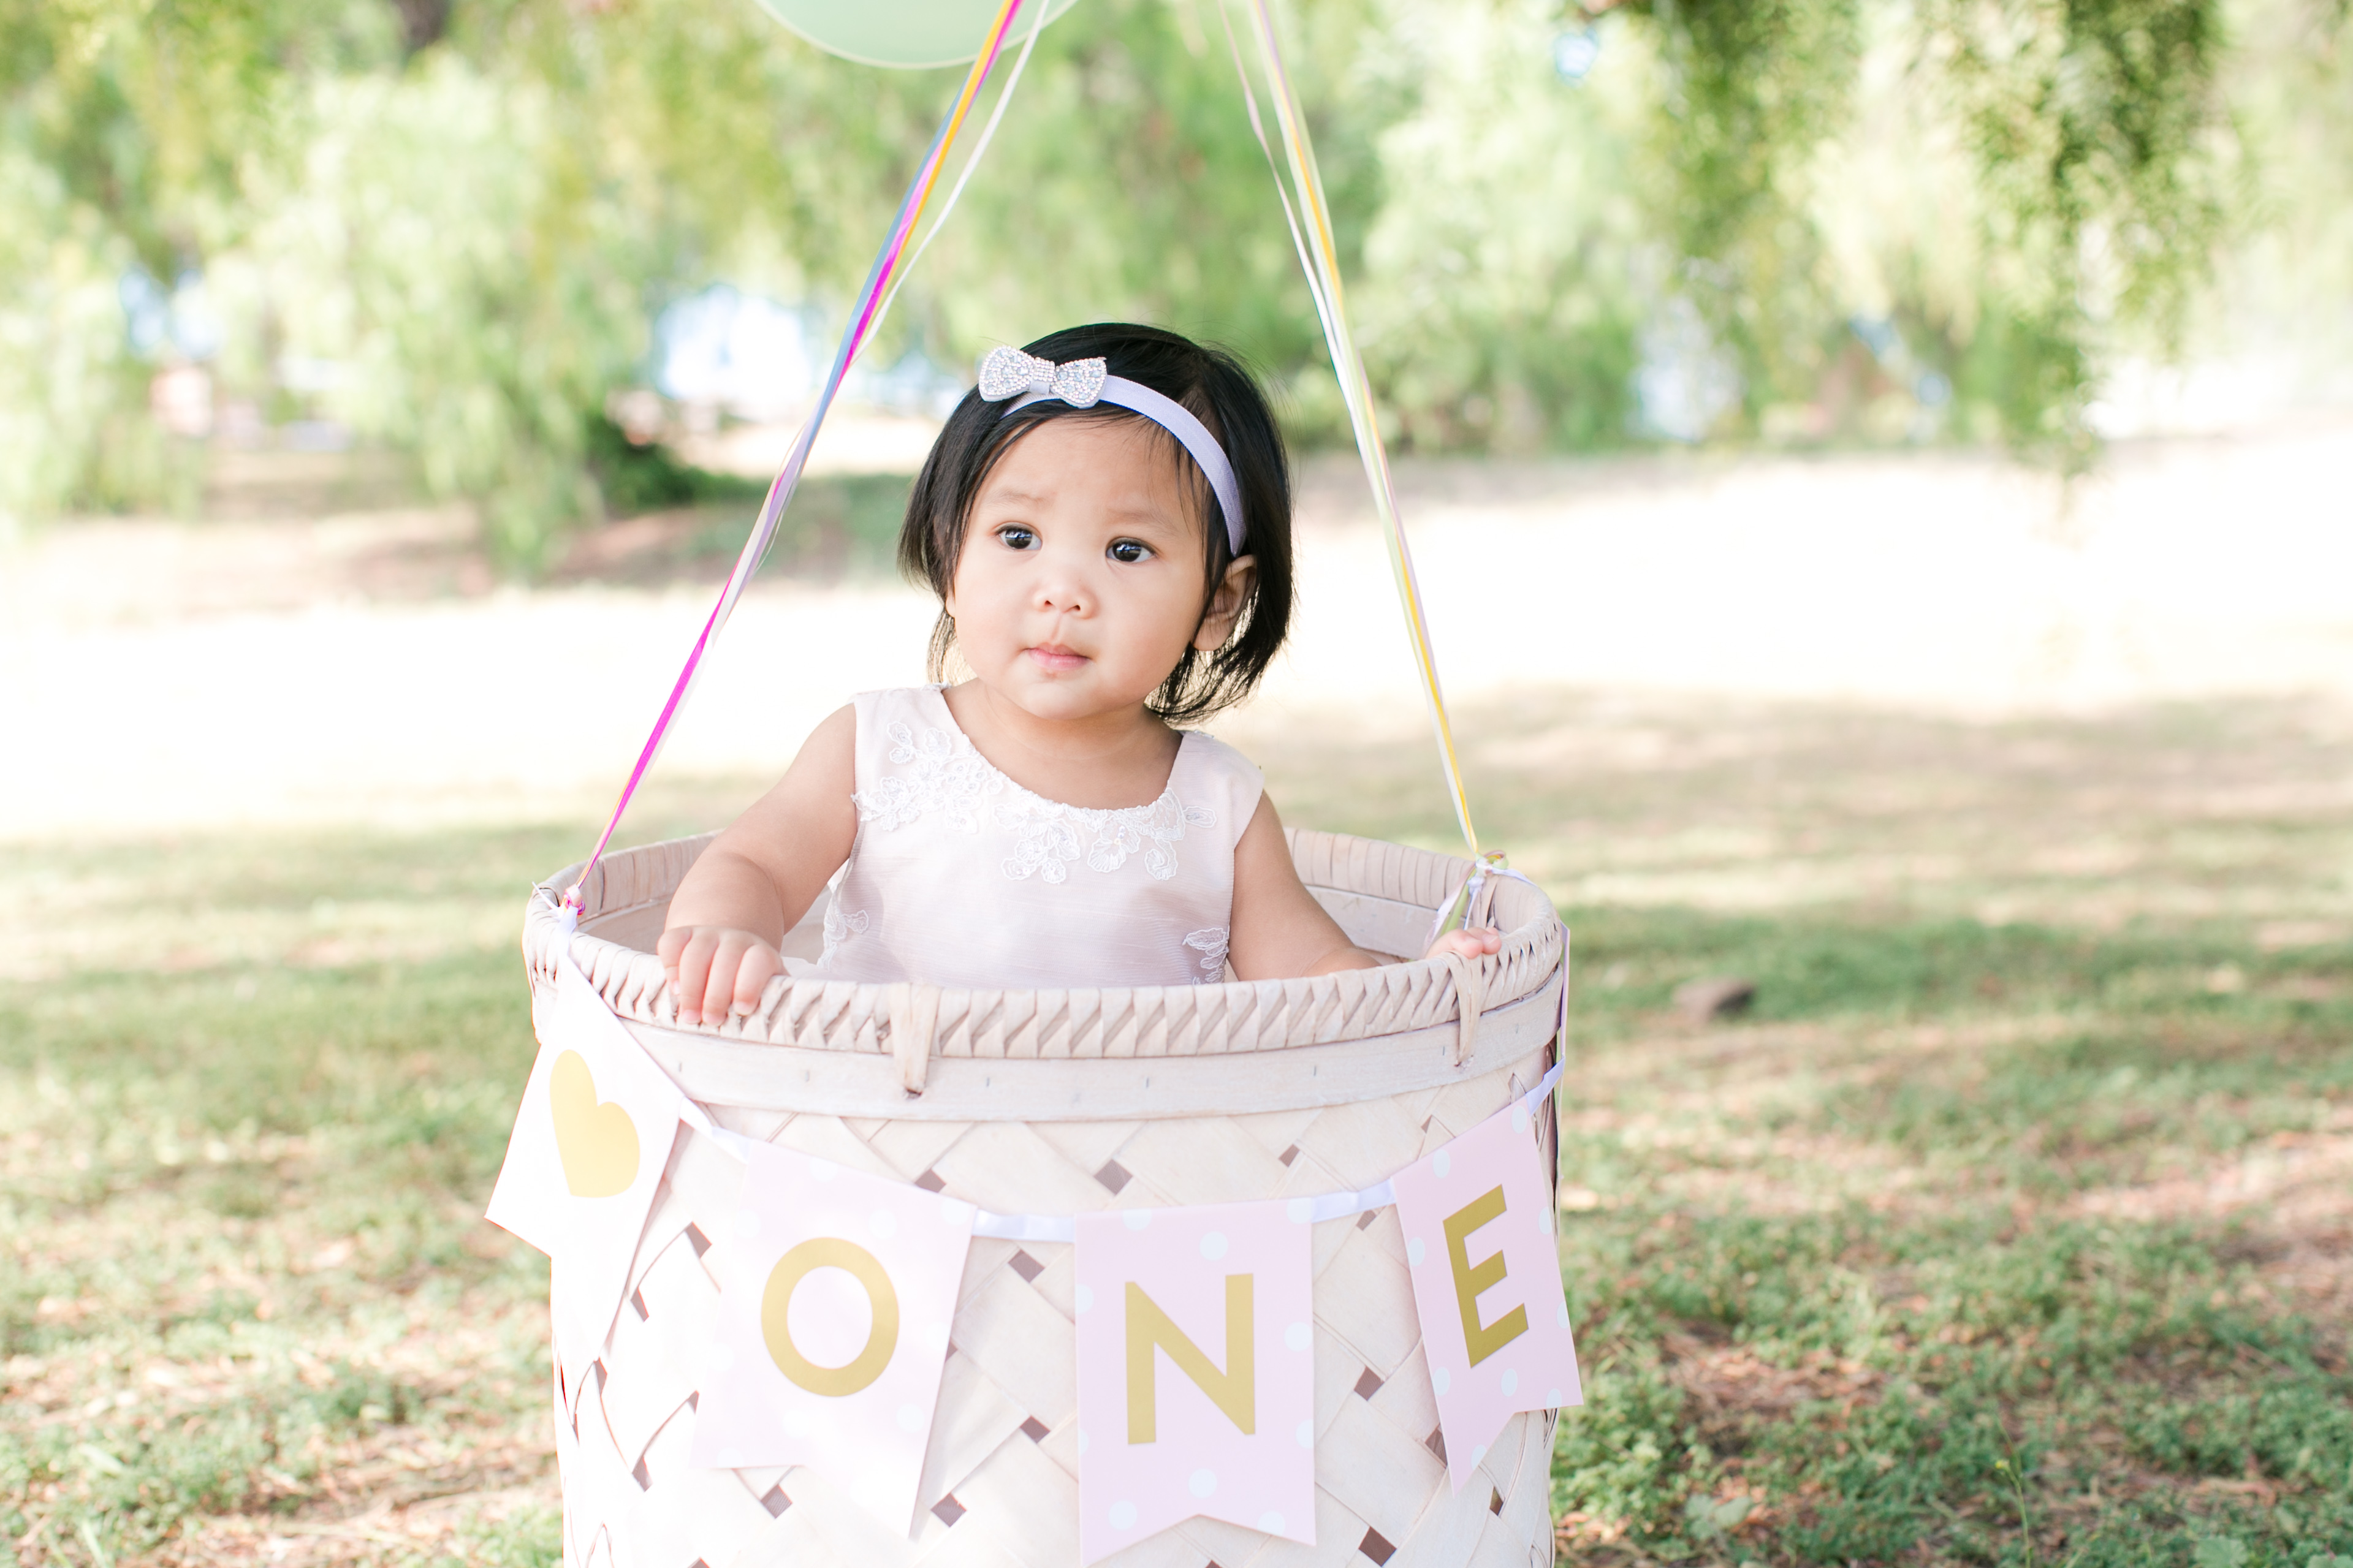 NEMA Photography J.Pham019 - Baby Justine // One year old portraits